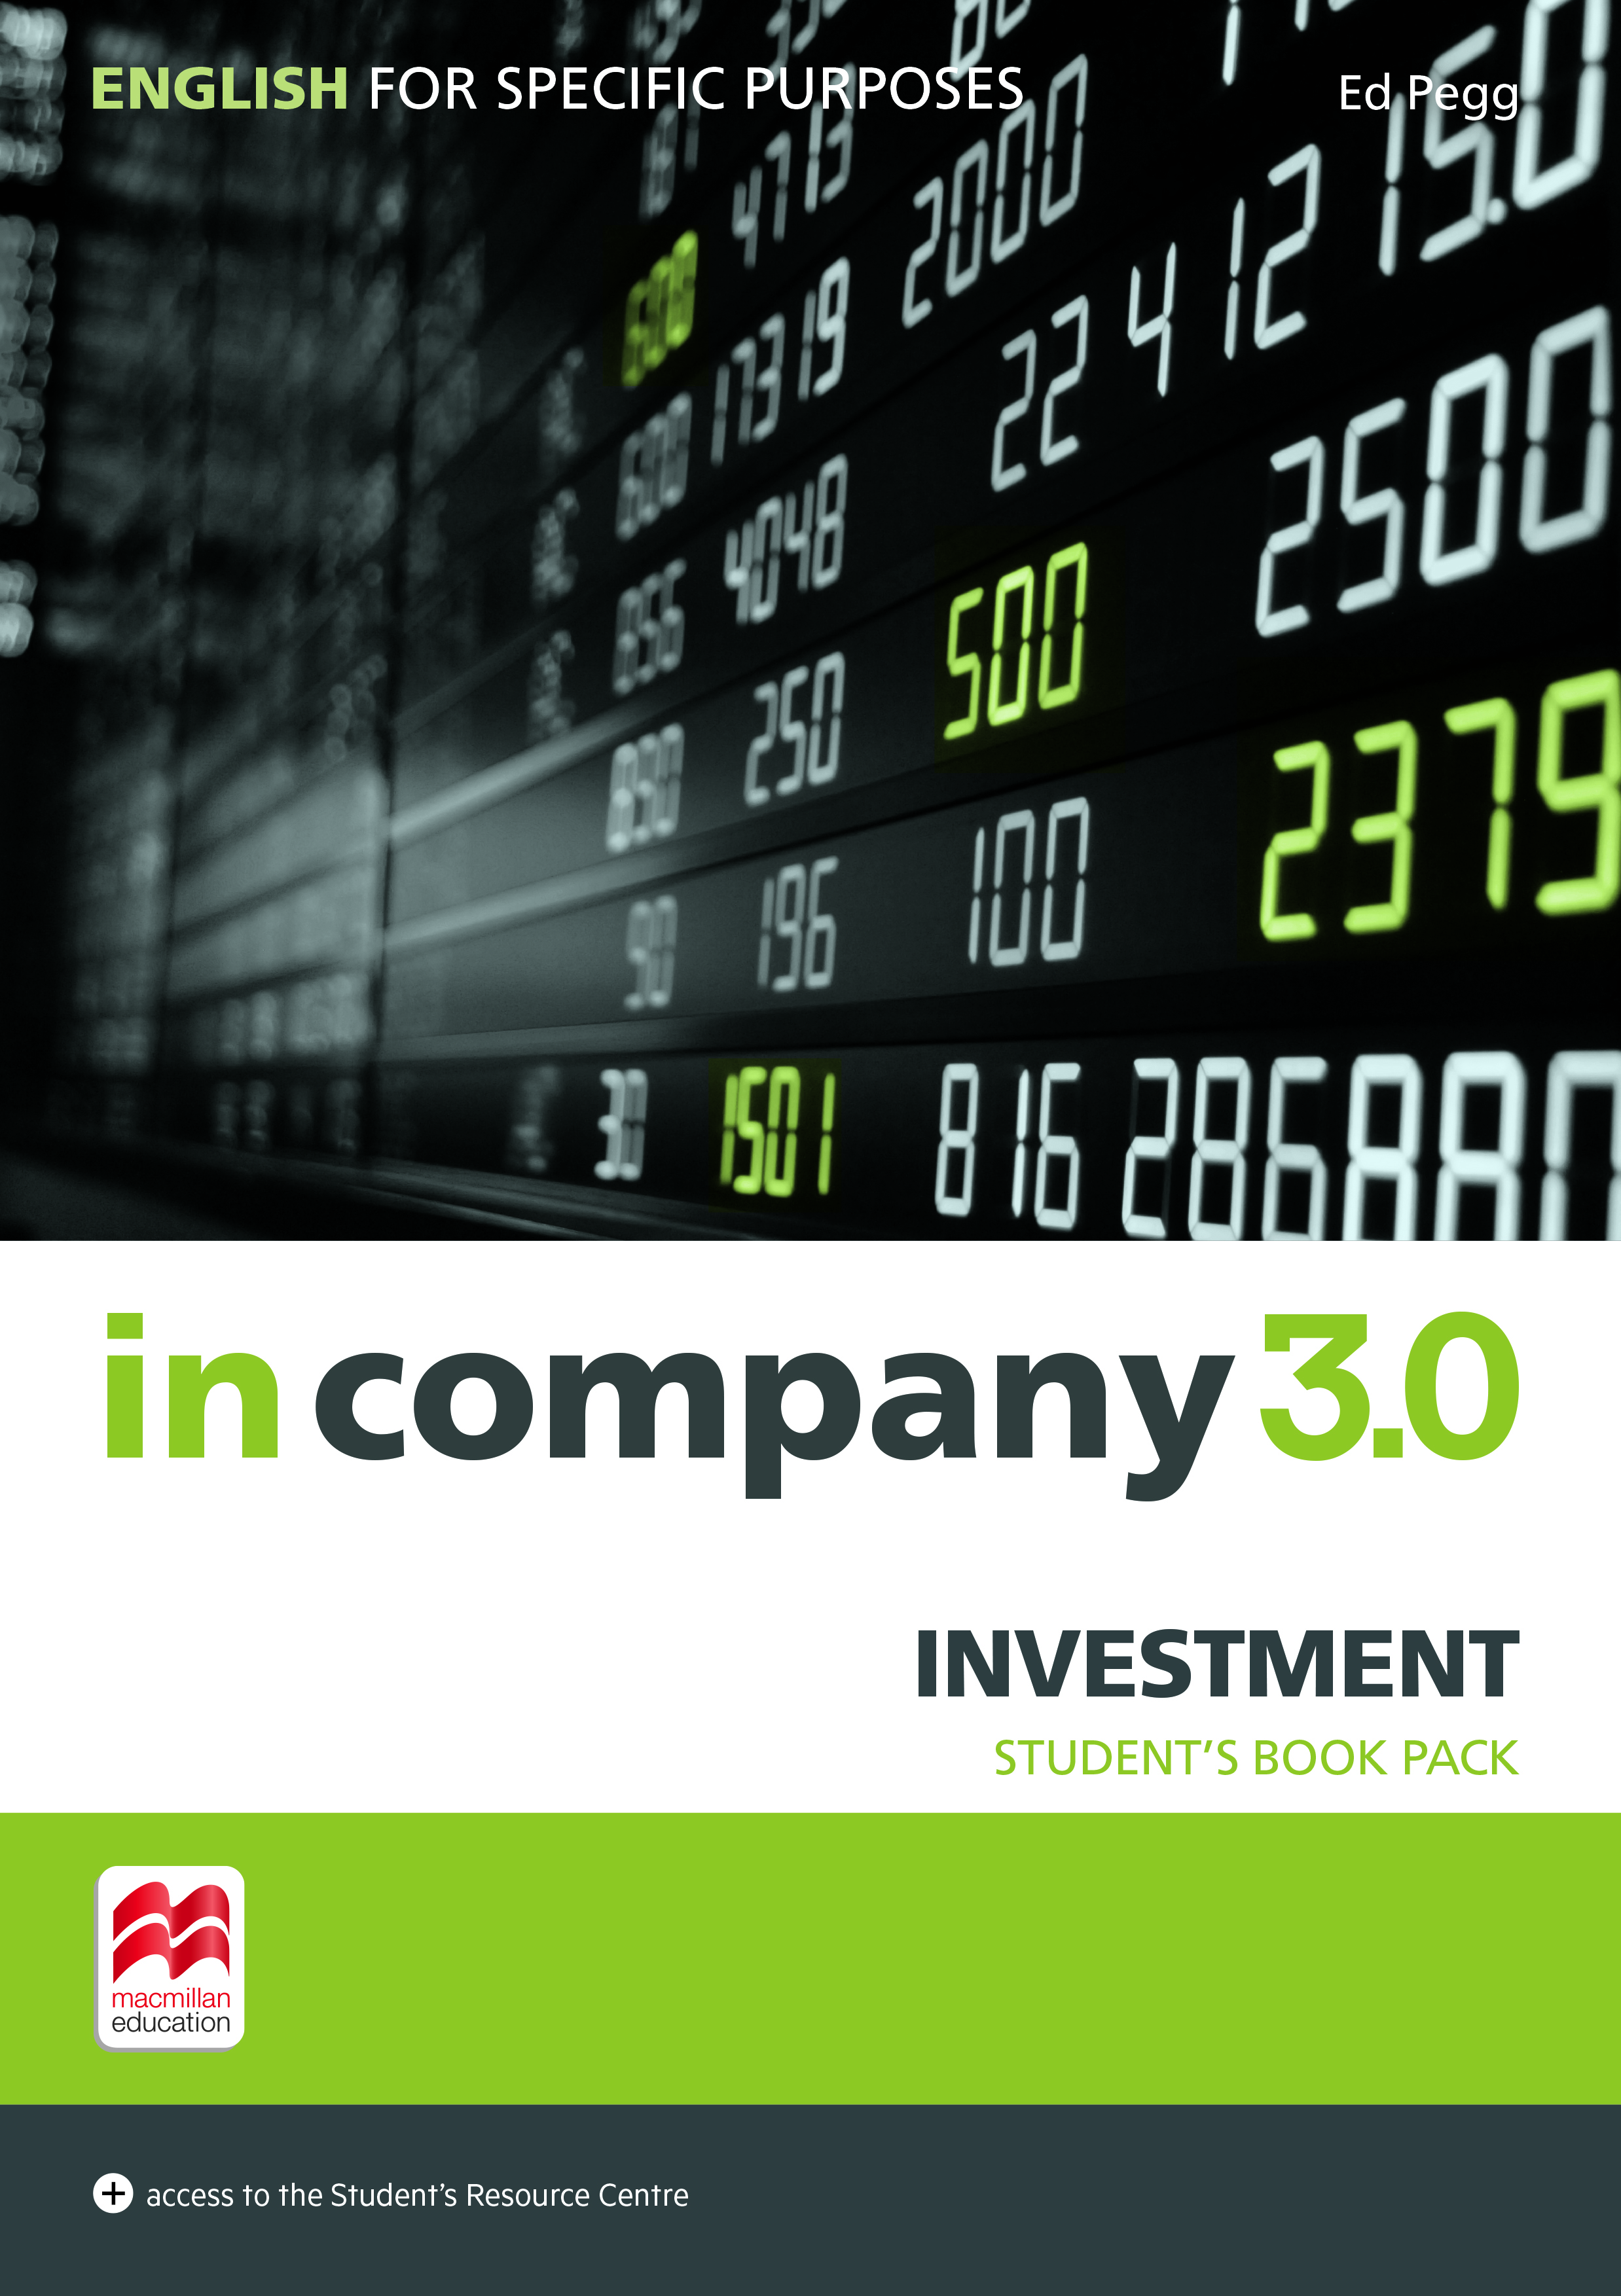 In Company 3.0 ESP Investment Student